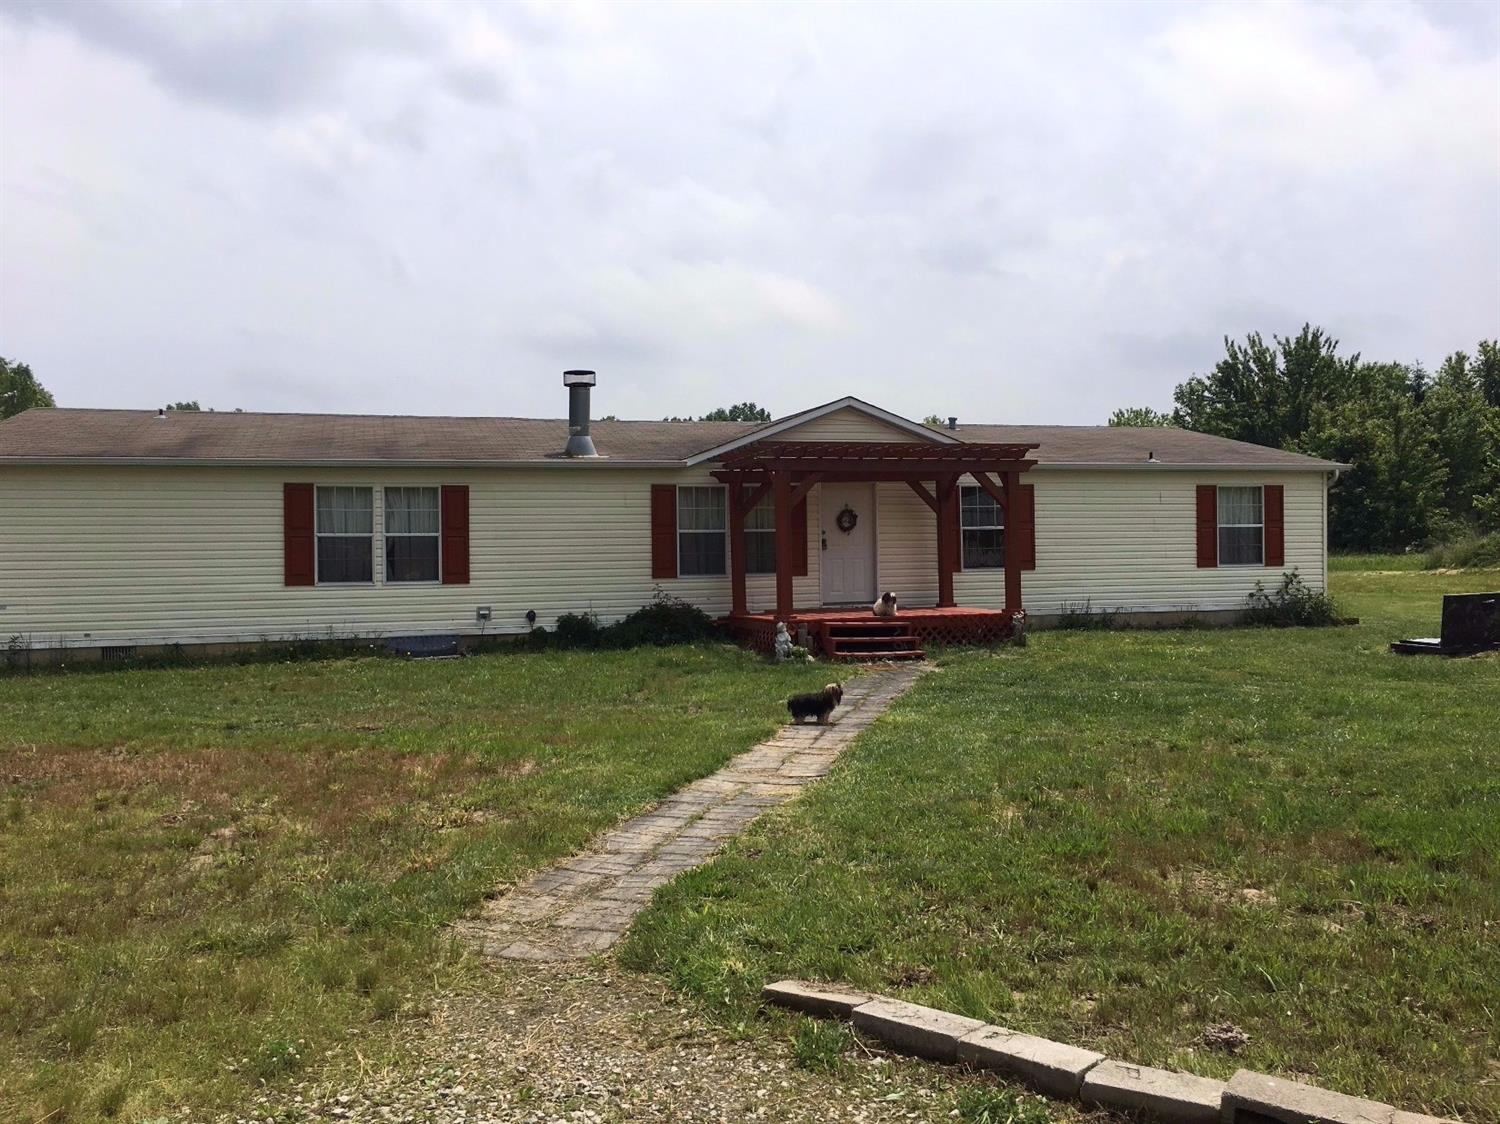 16328 Edgington Rd, Williamsburg, OH 45176